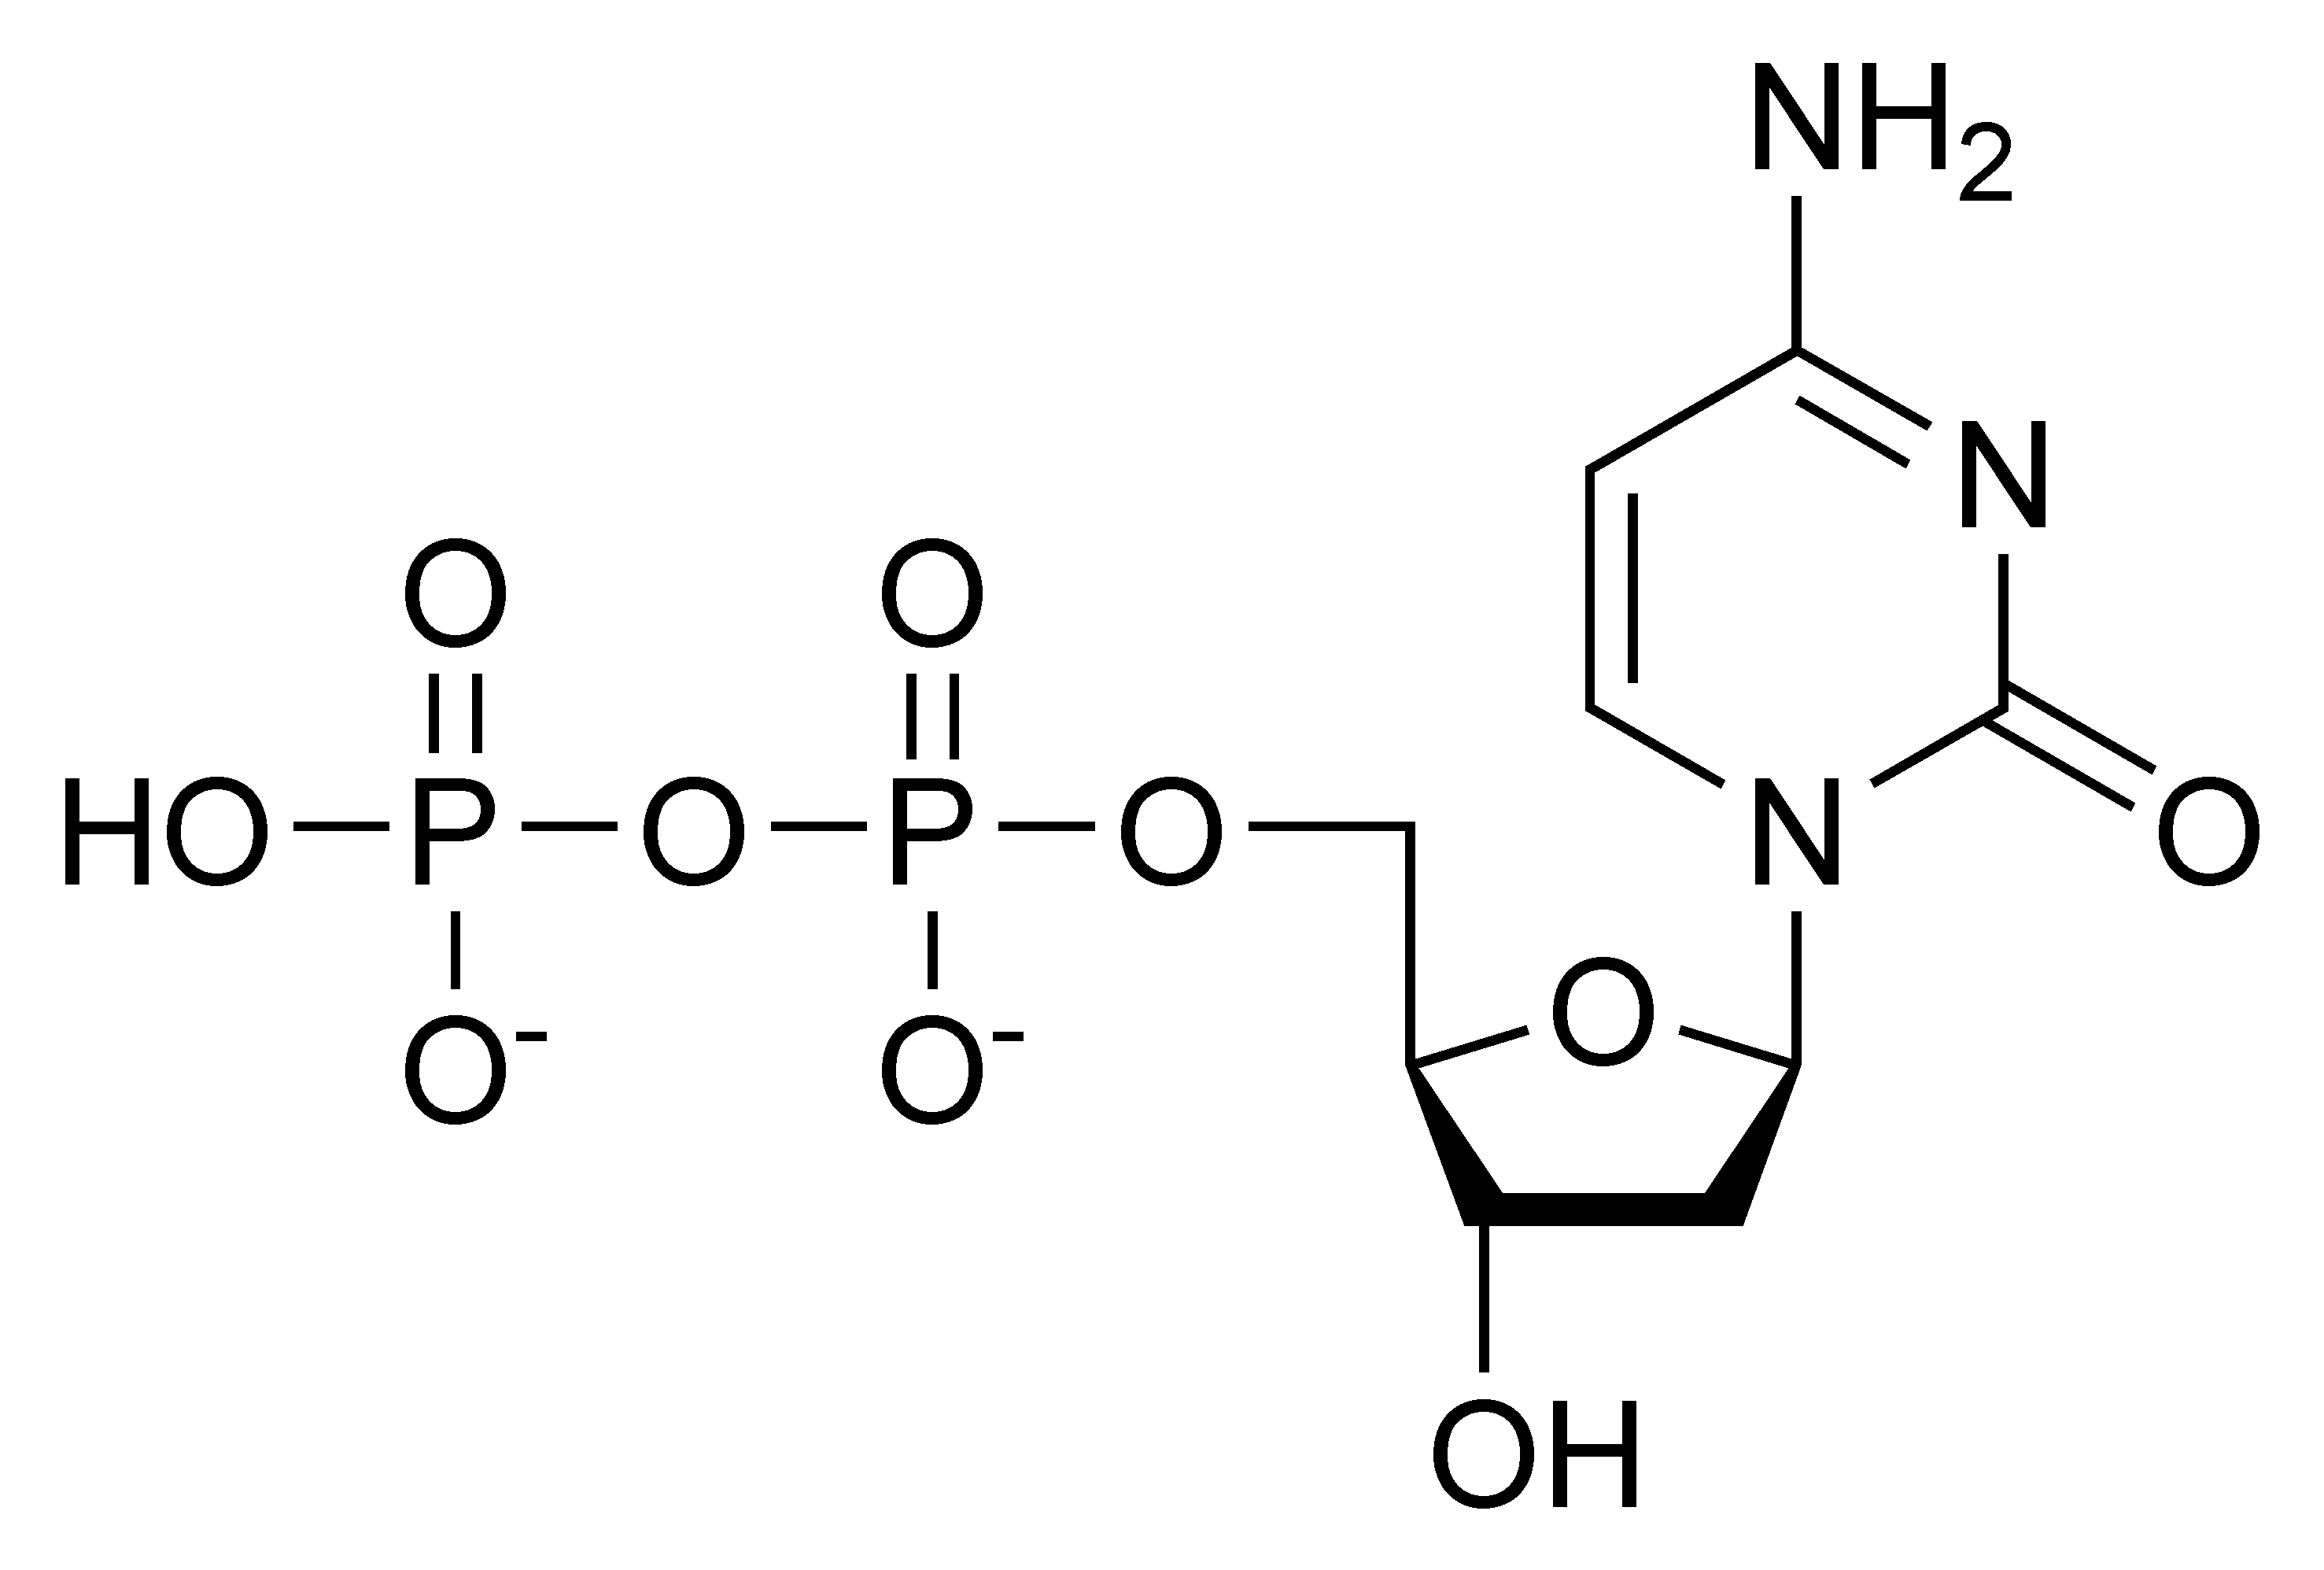 Chemical structure of deoxycytidine diphosphate